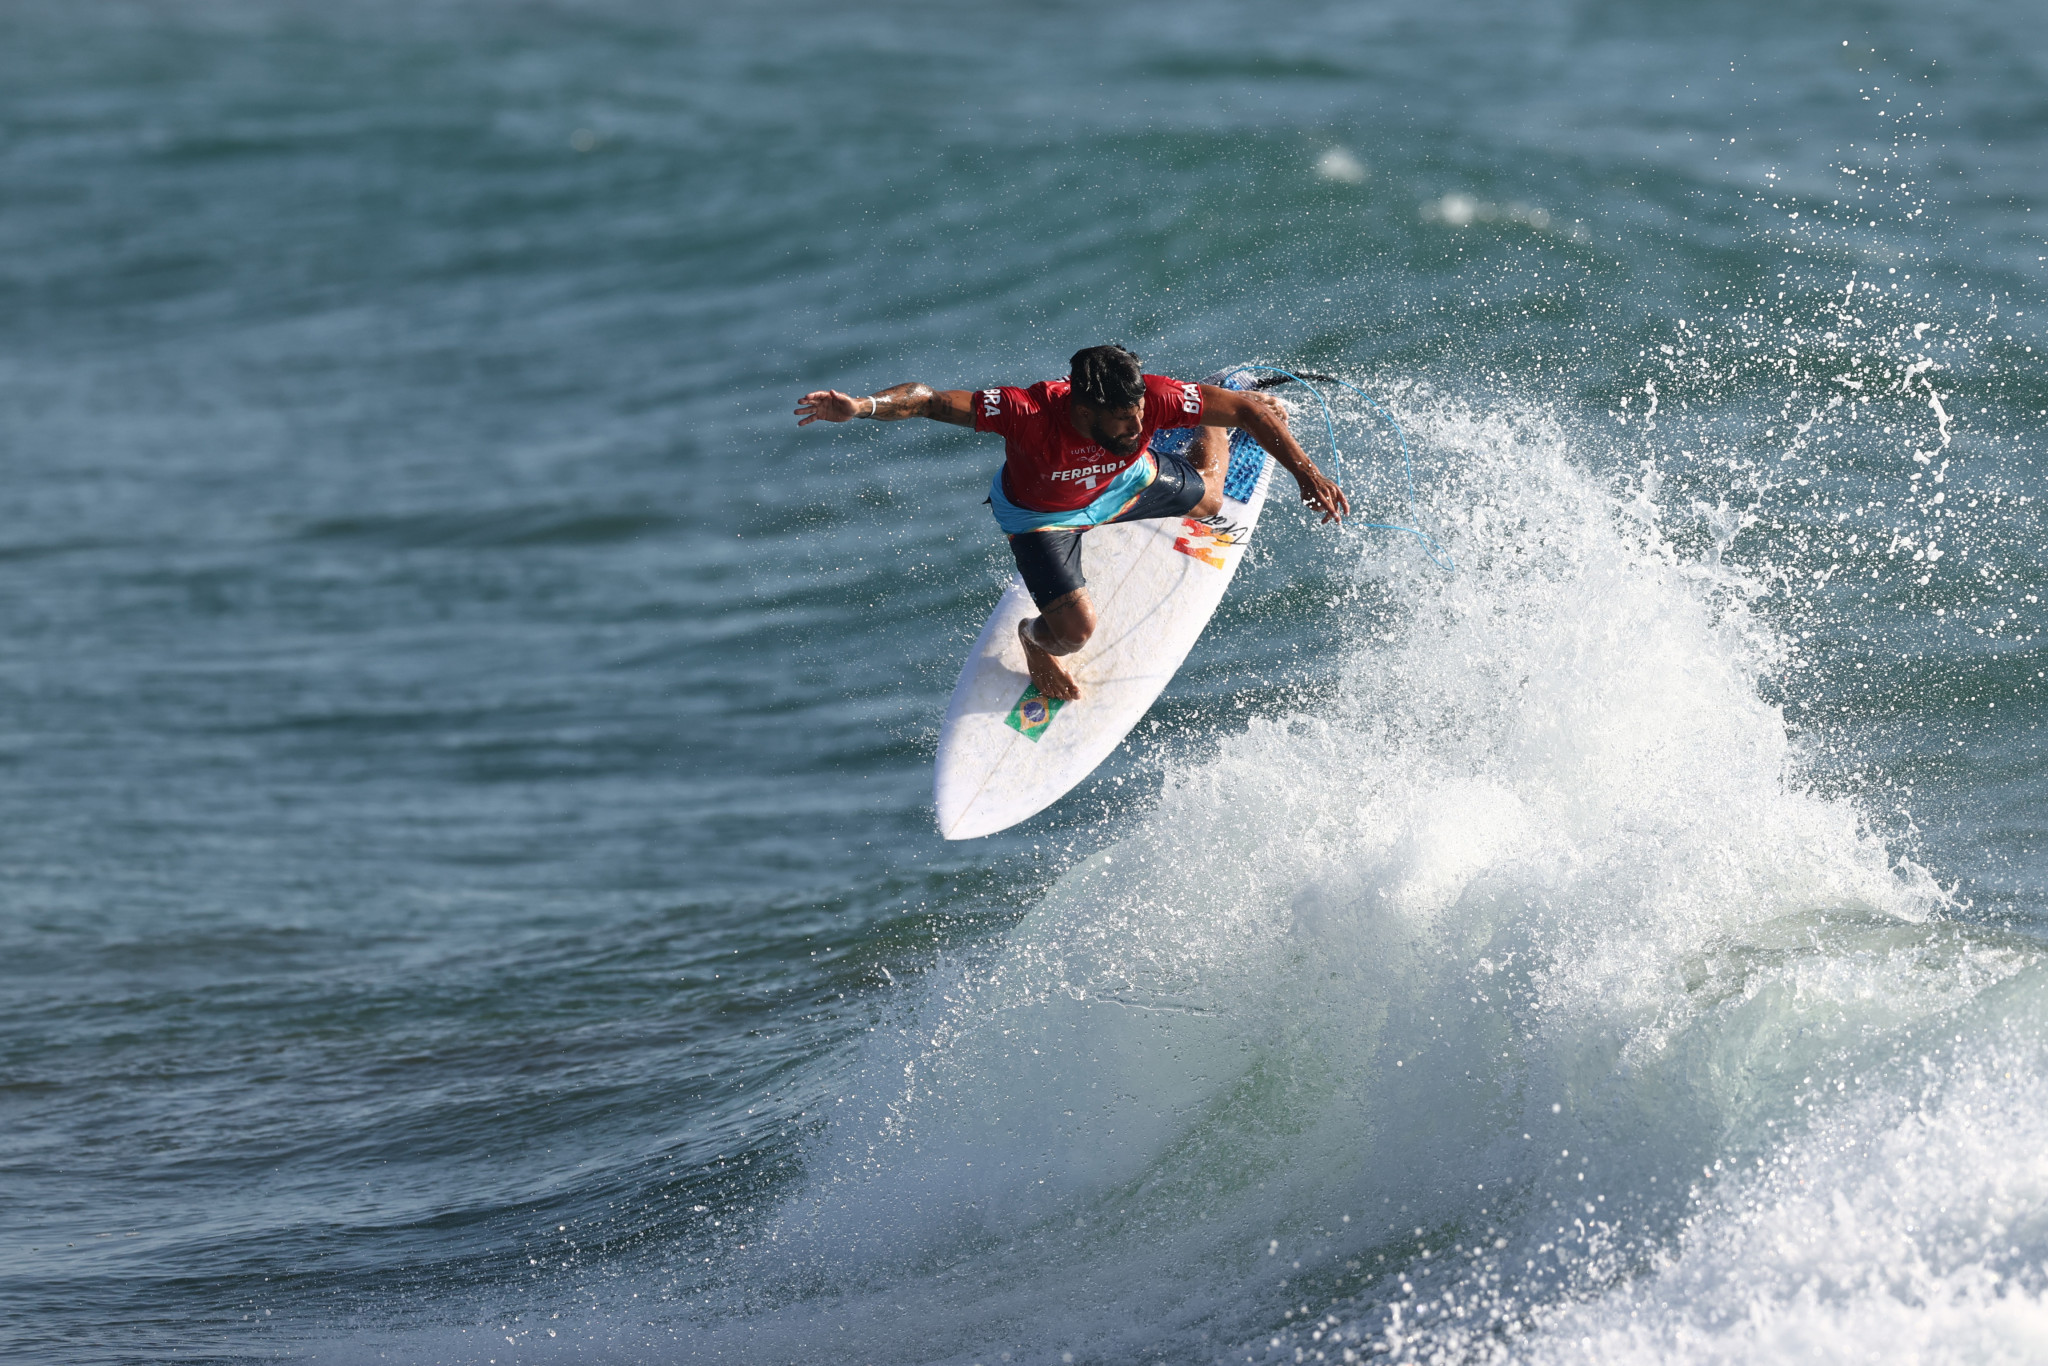 Italo Ferreira won Heat 1 today with a score of 13.67 and is one of the favourites for the gold medal in the men's surfing event ©Getty Images